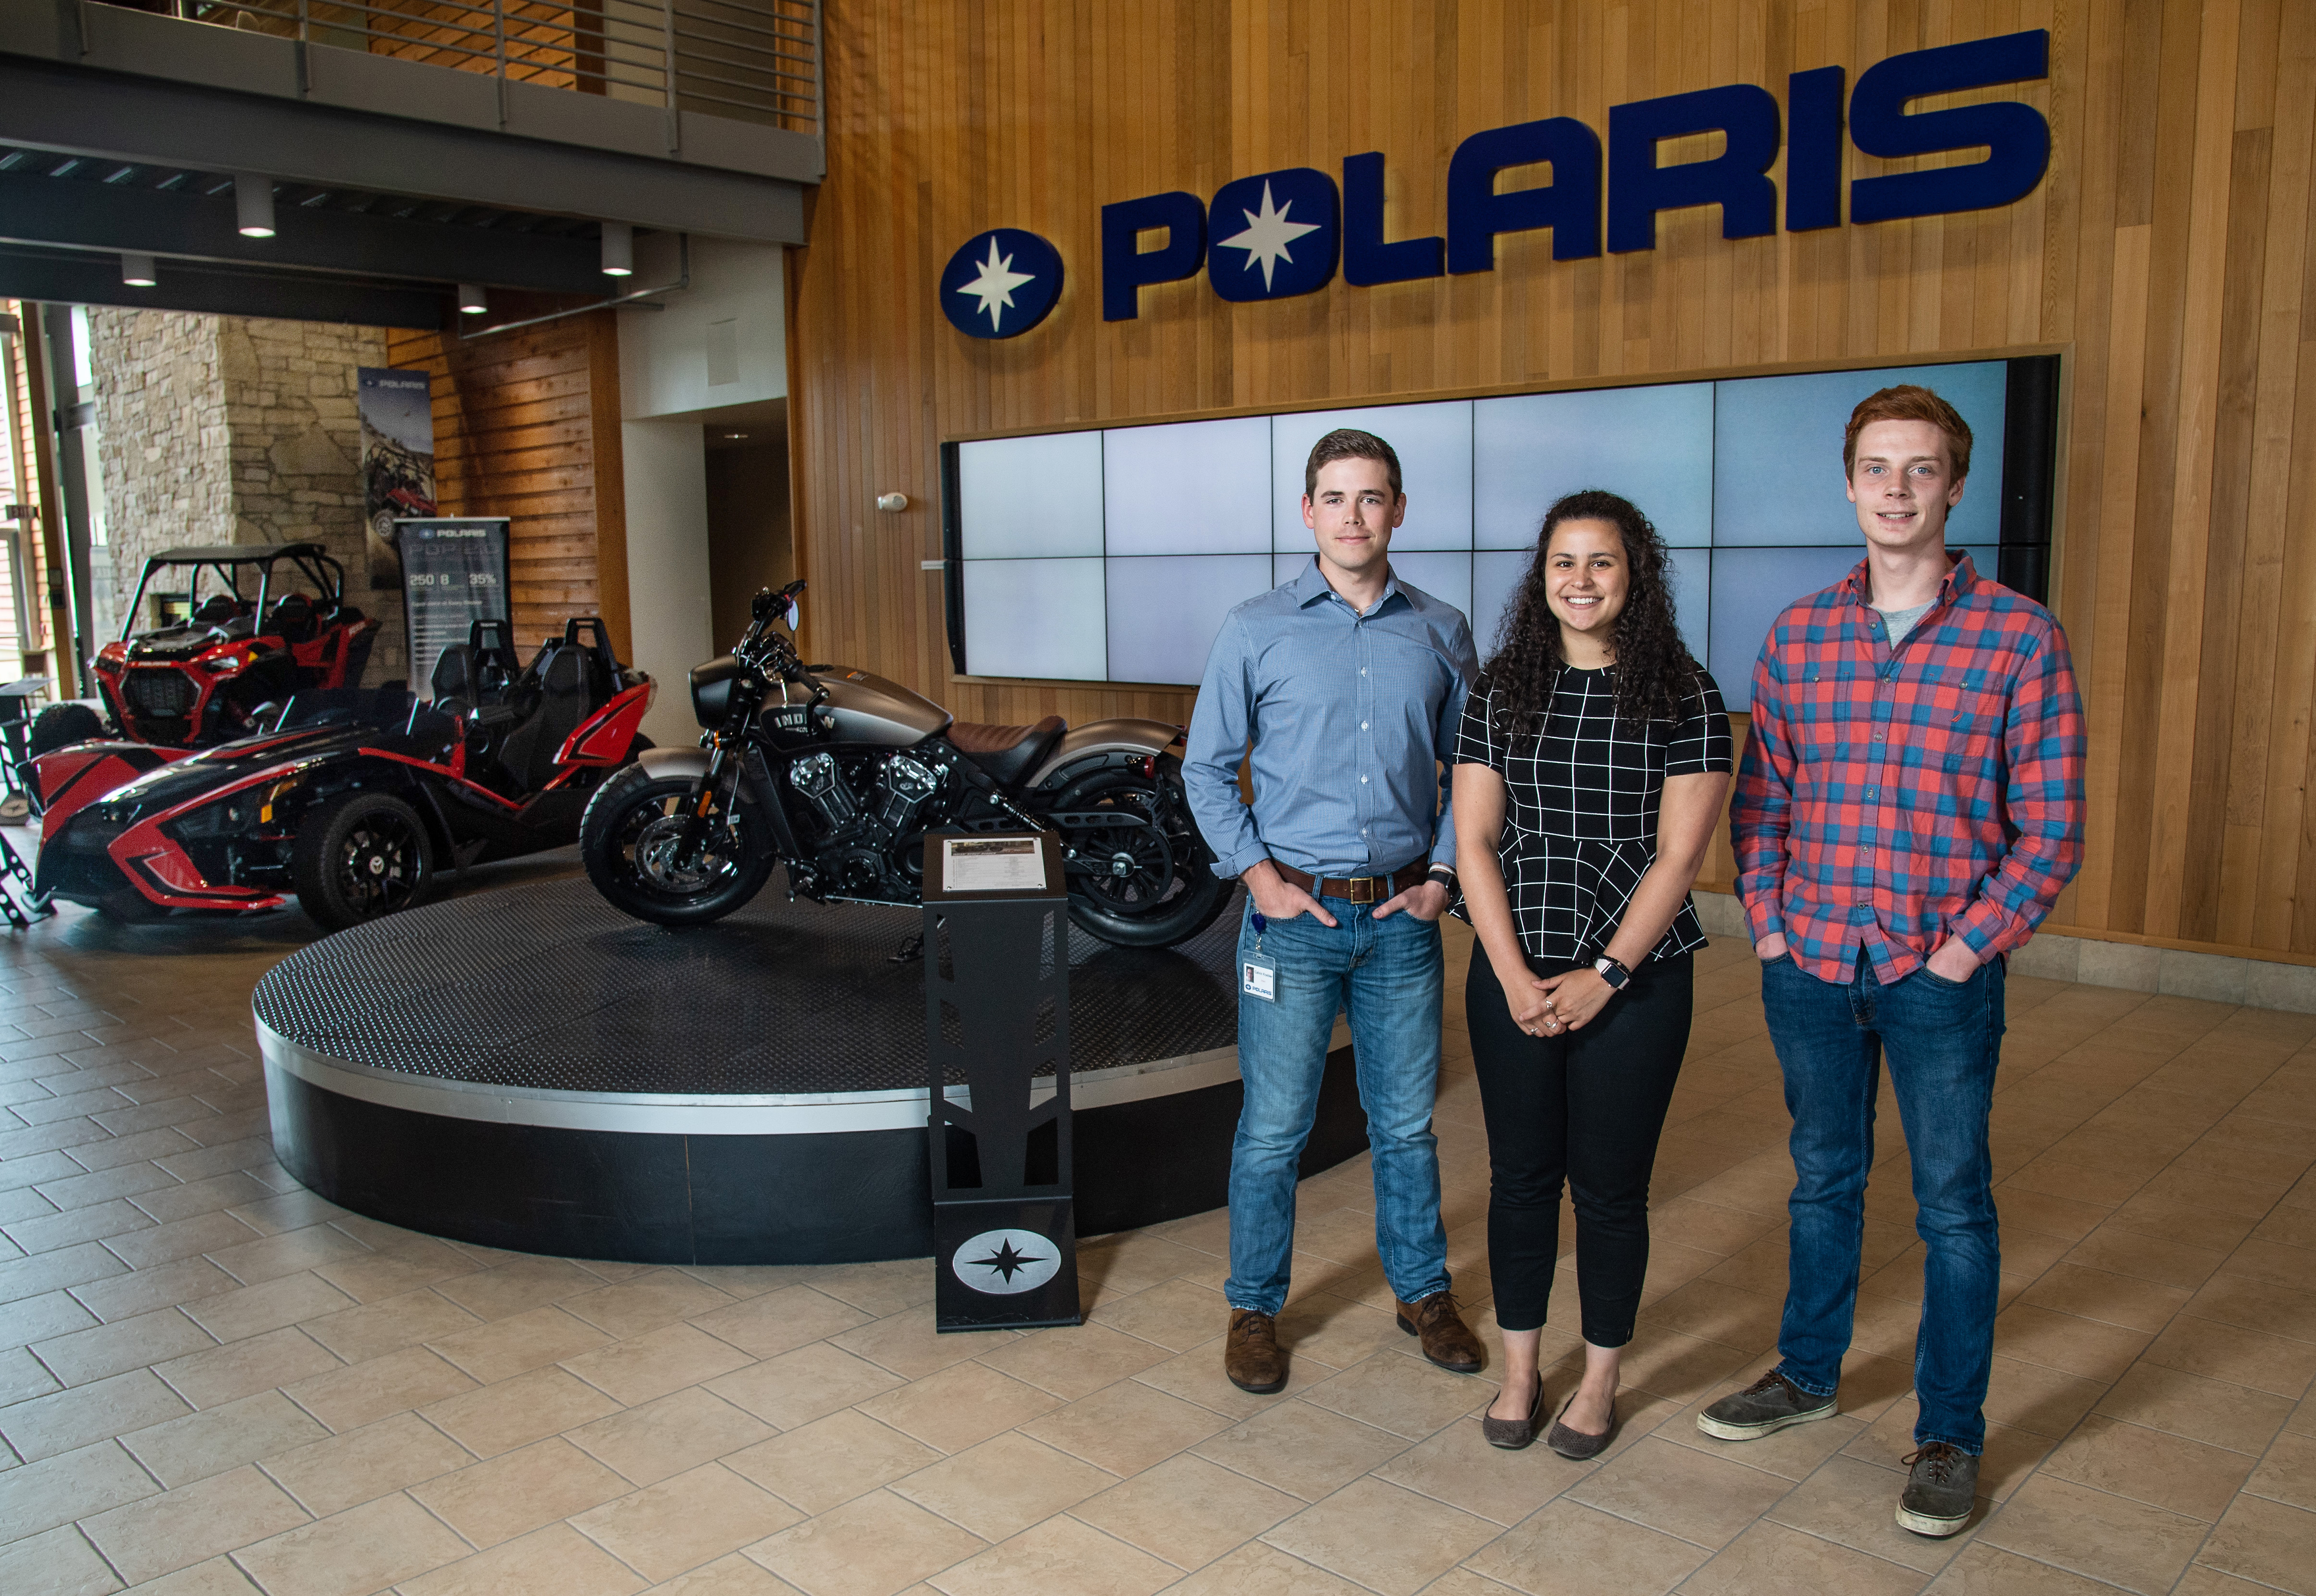 Three interns in front of Polaris sign